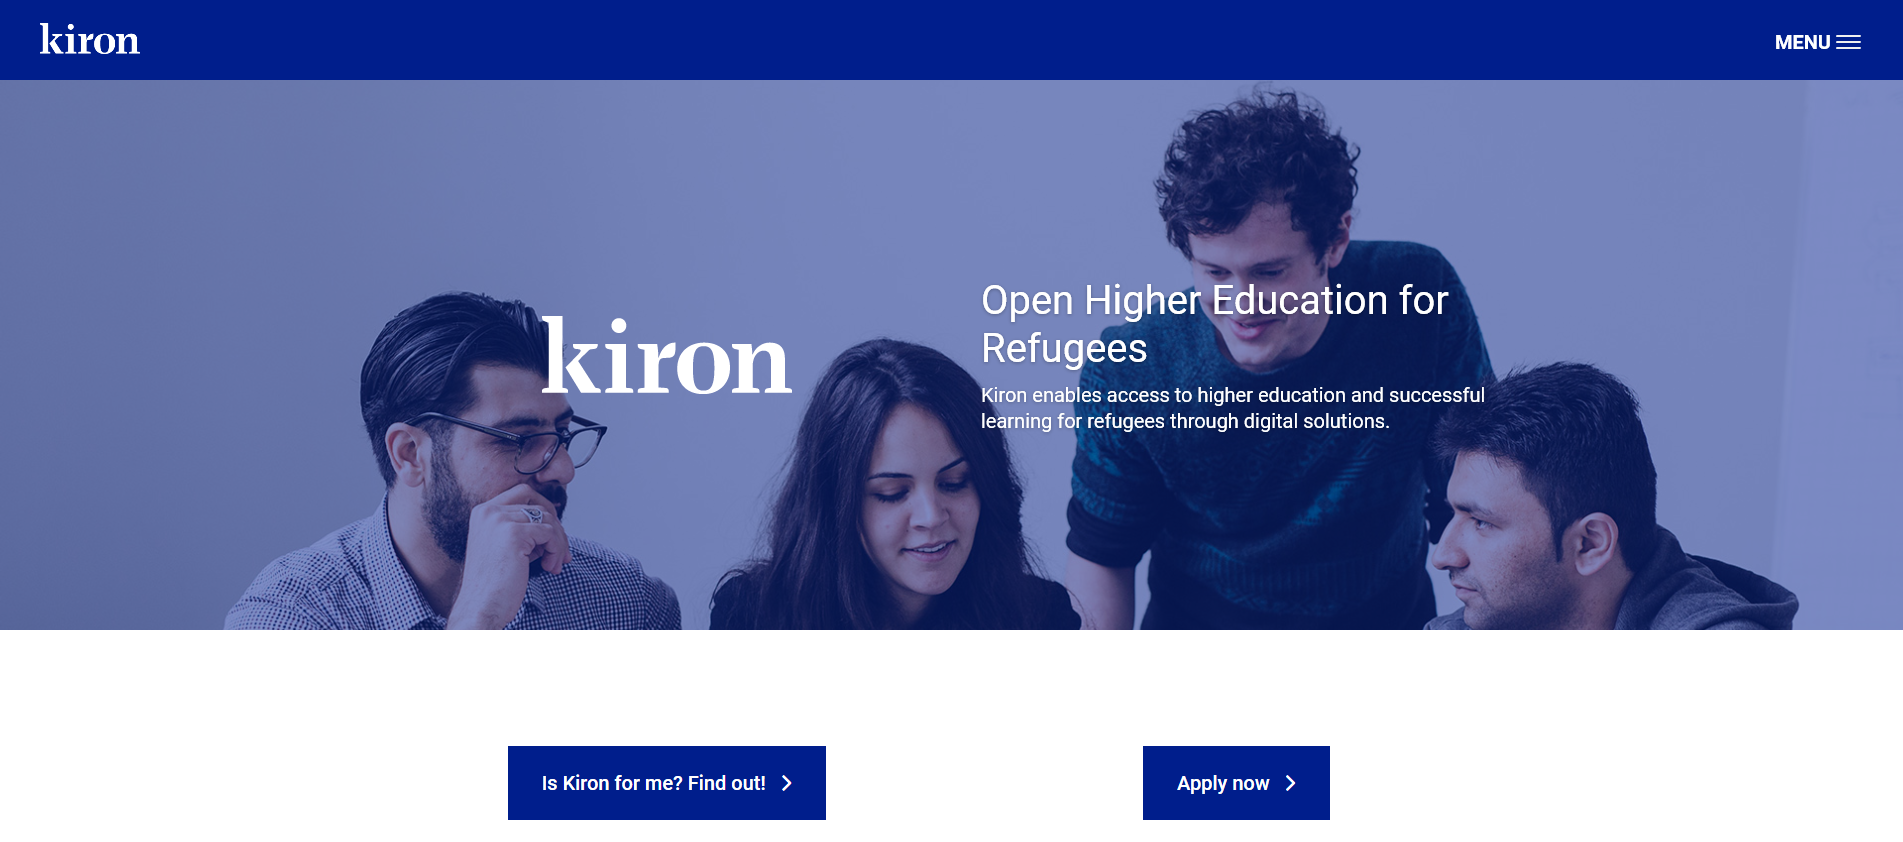 Kiron (Open Higher Education for Refugees)